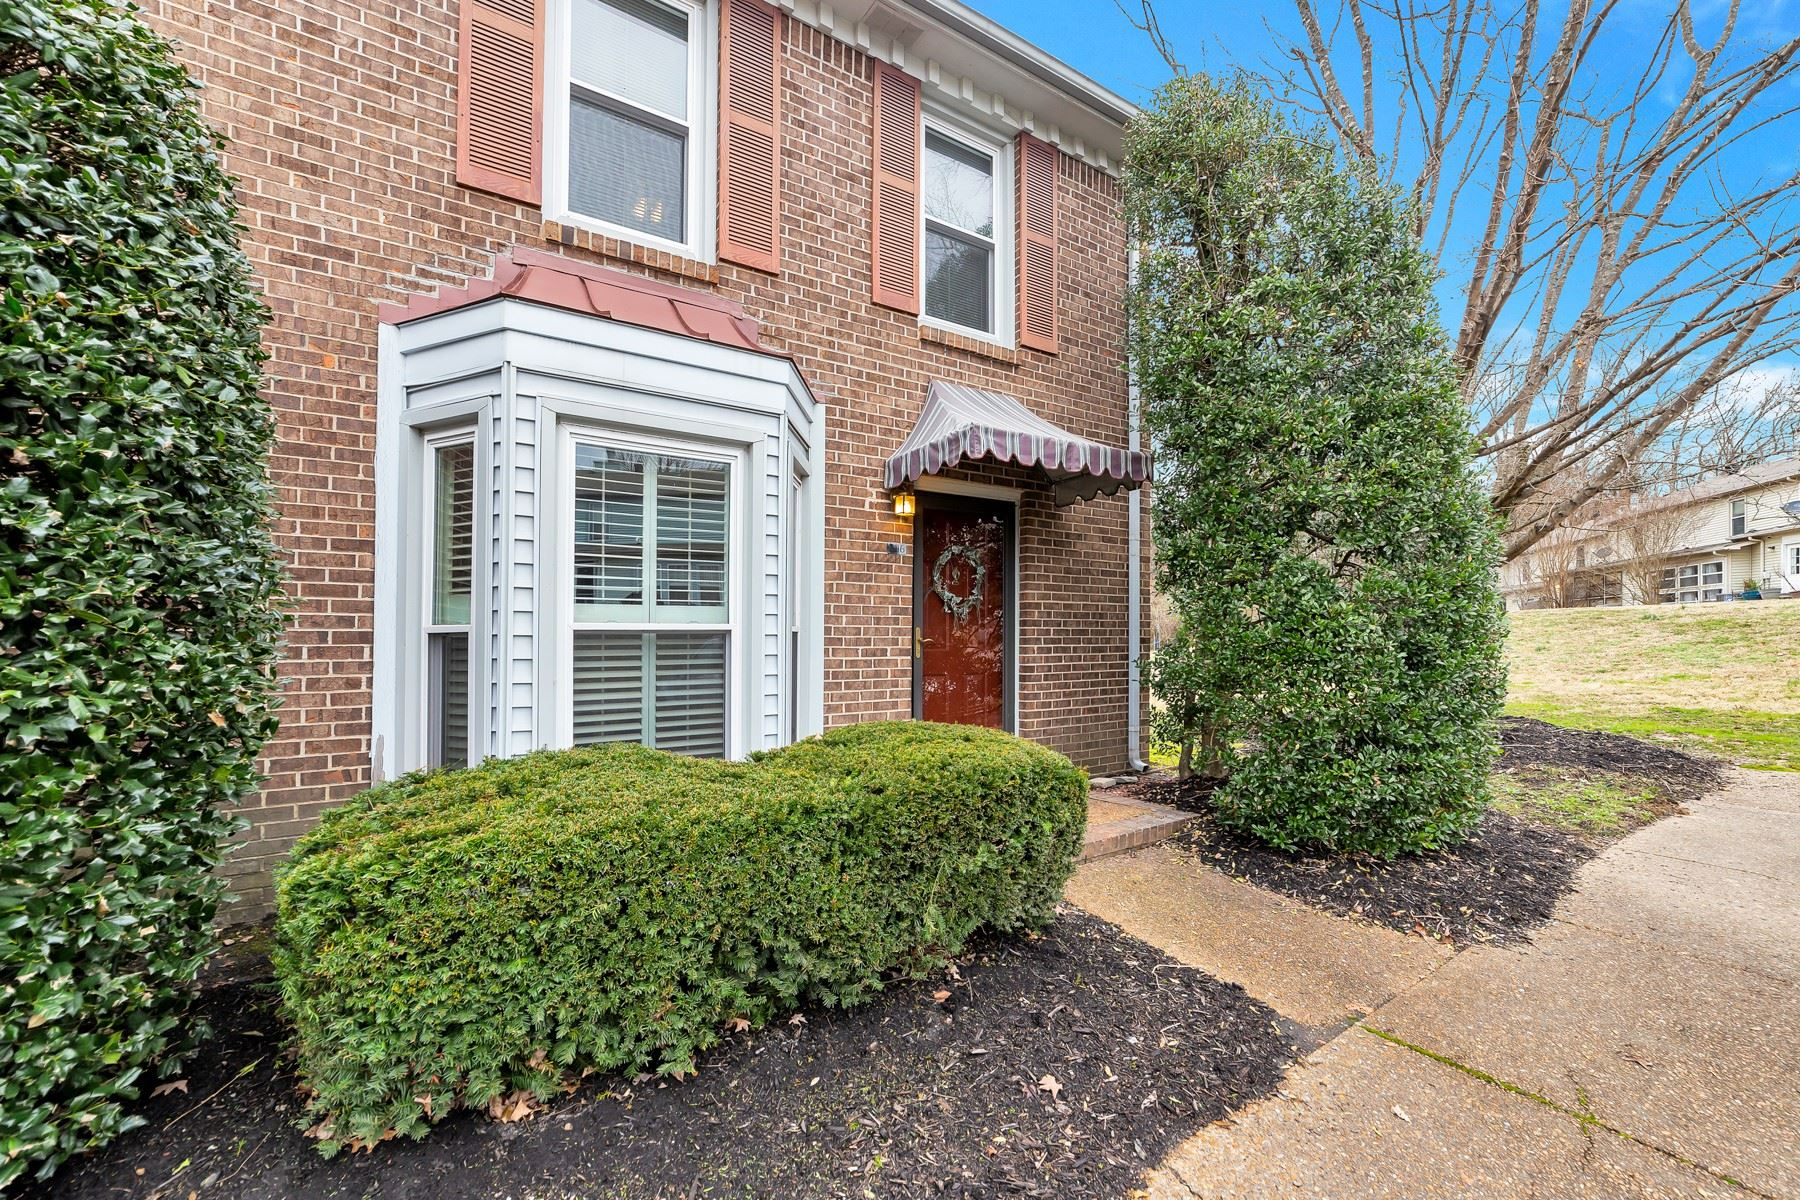 506 Williamsburg Dr, Nashville, TN 37214 - MLS#: 2251237